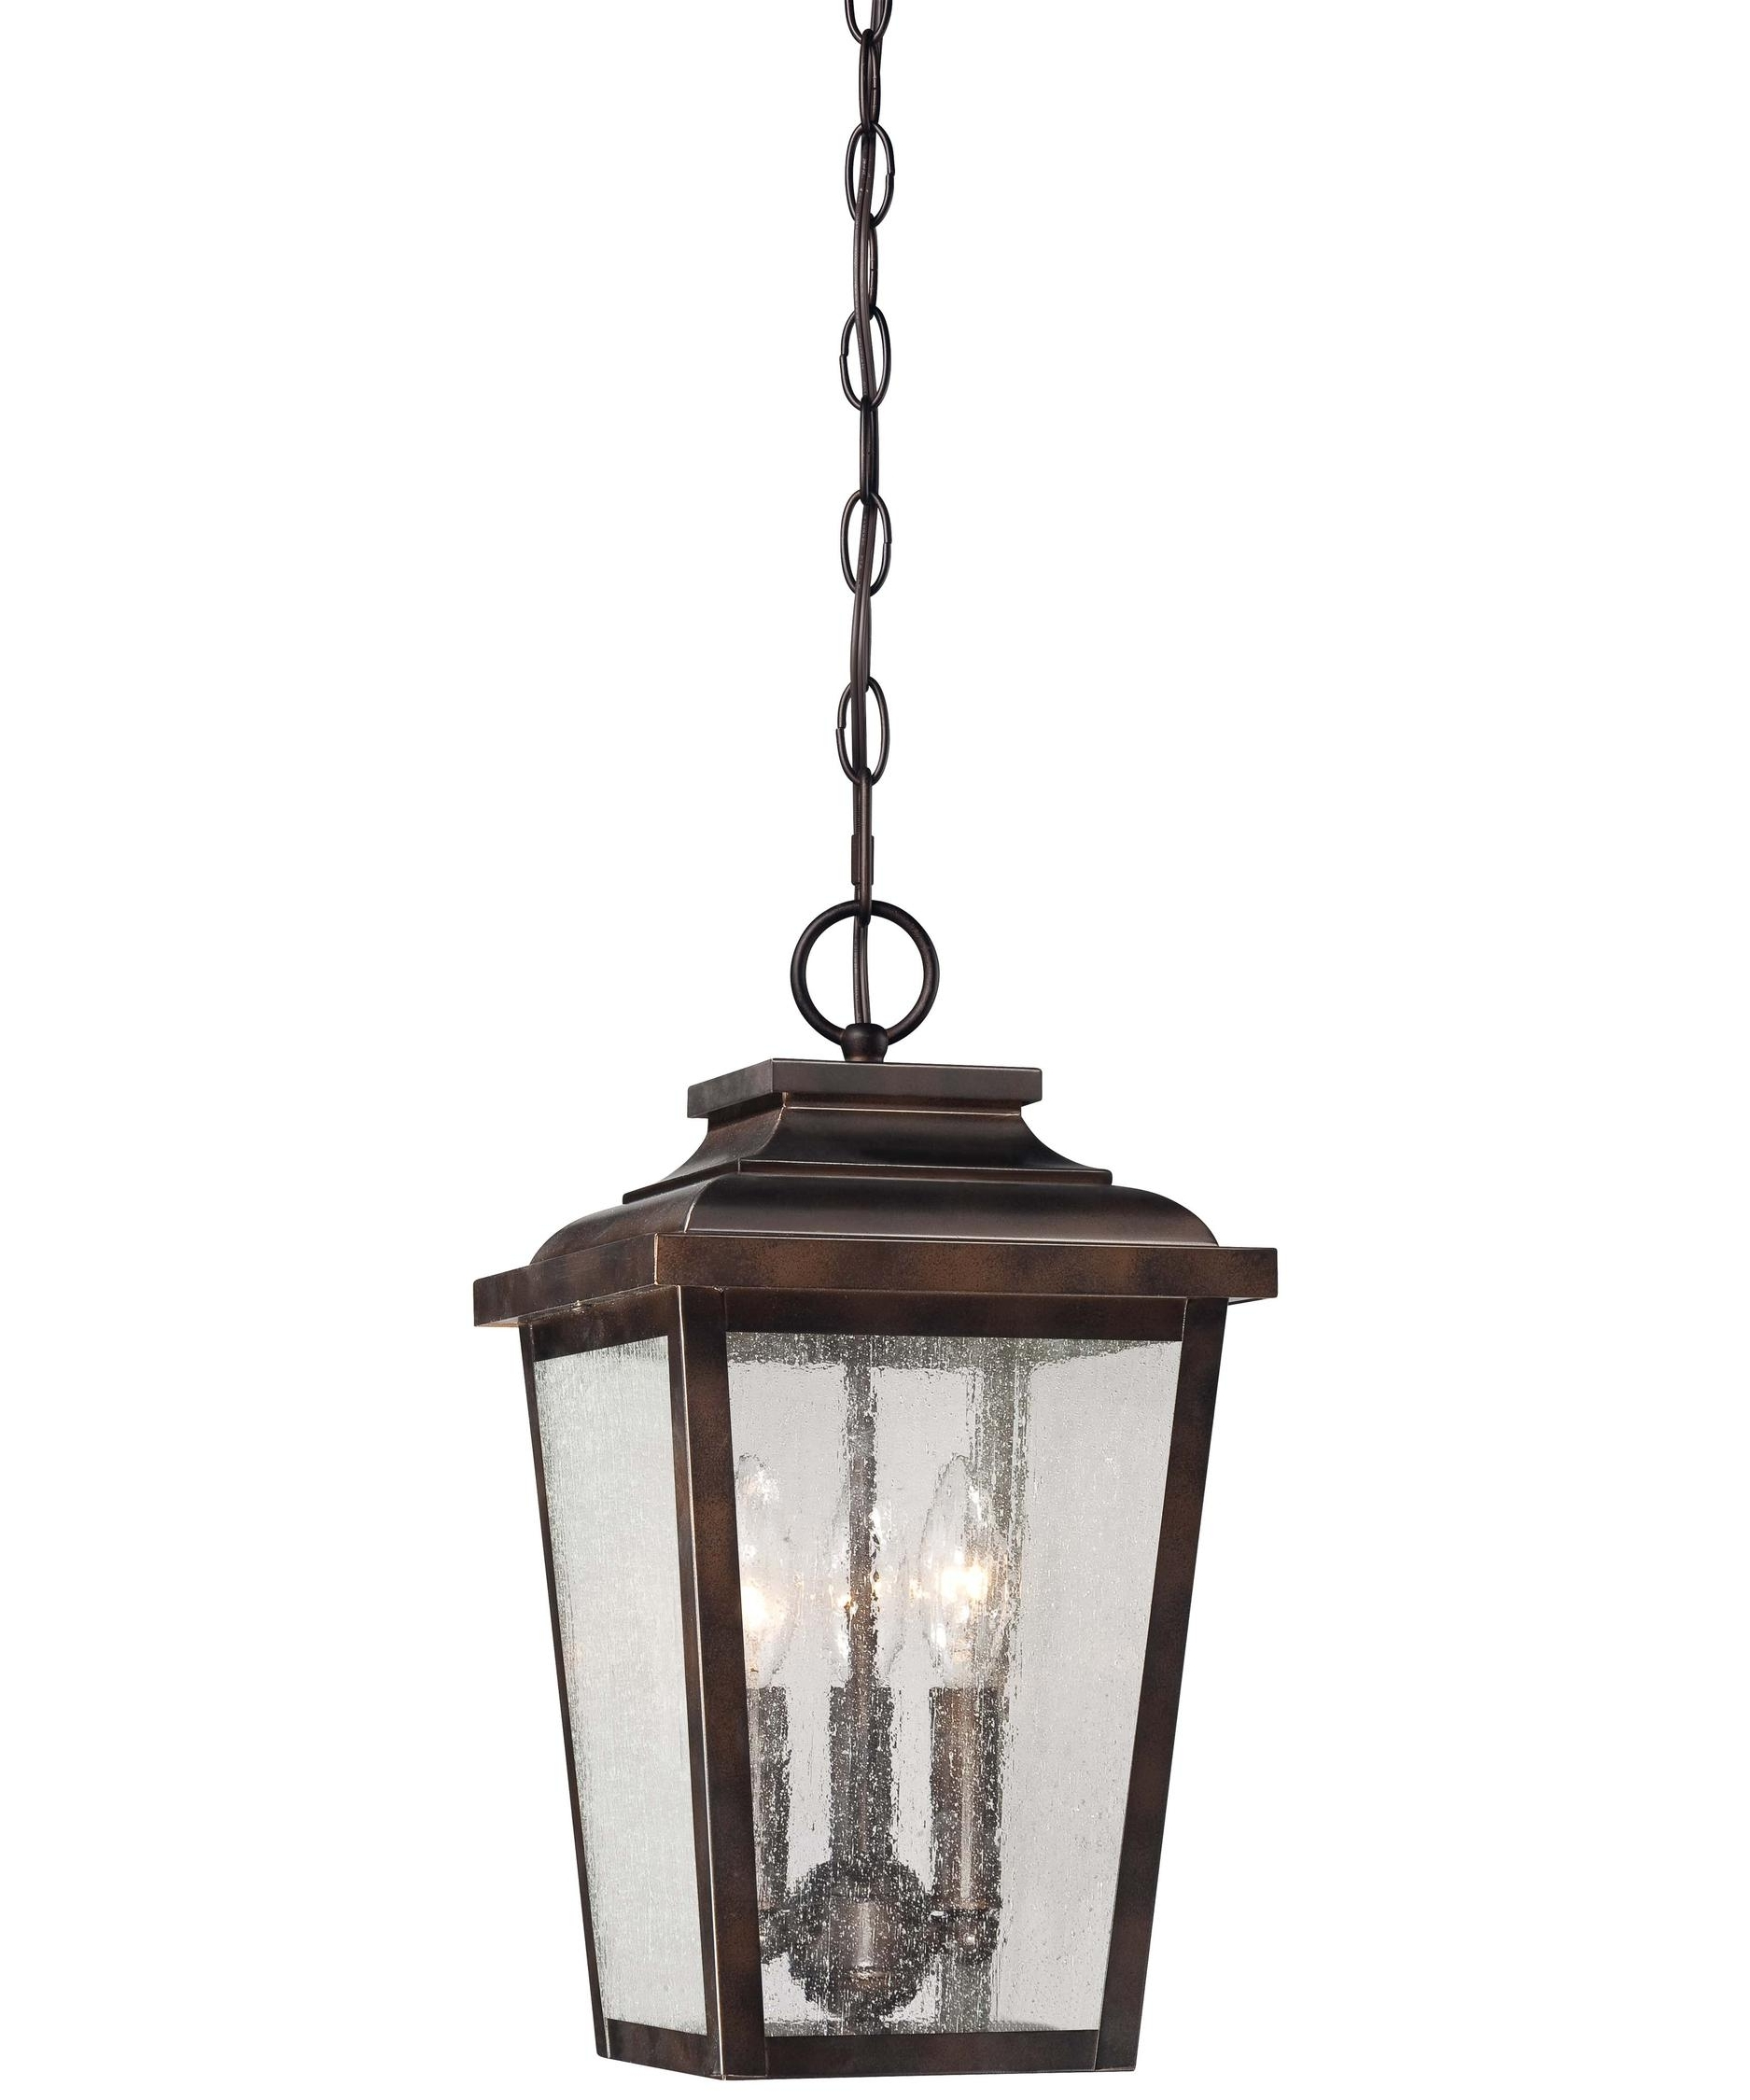 Minka Lavery 72174 Irvington Manor 9 Inch Wide 3 Light Outdoor With Regard To 2018 Outdoor Pendant Lanterns (View 3 of 20)